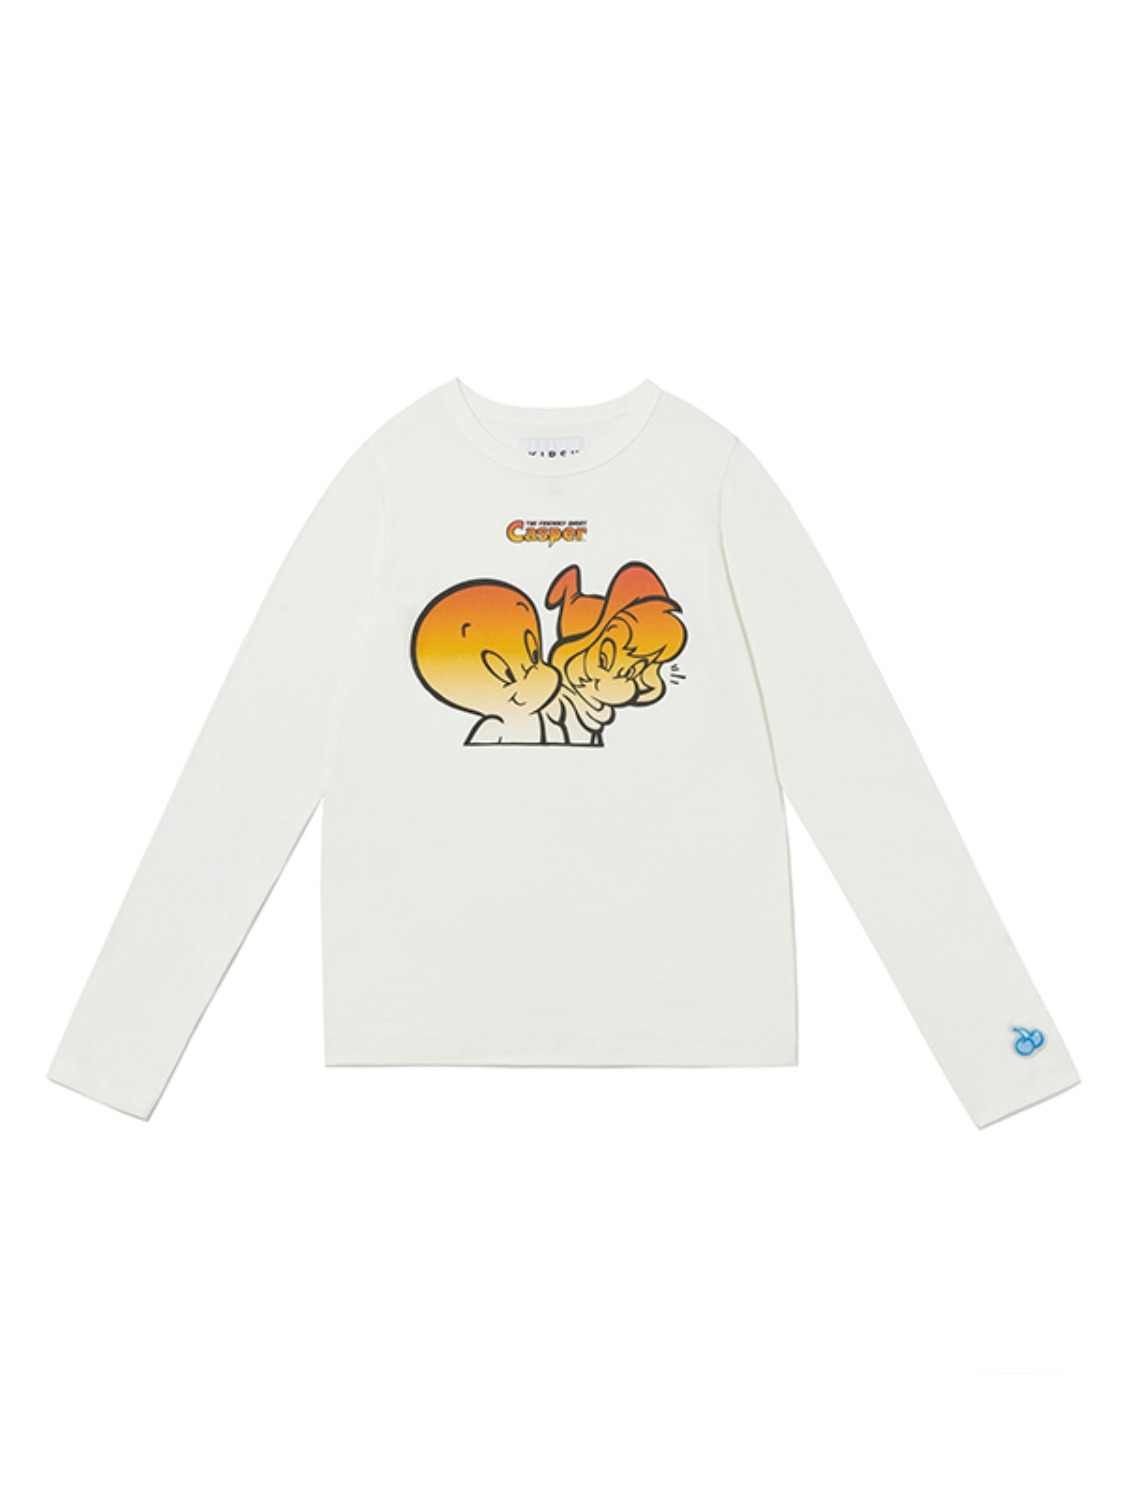 CASPER SLIM LONG SLEEVE T-SHIRT JA [WHITE]